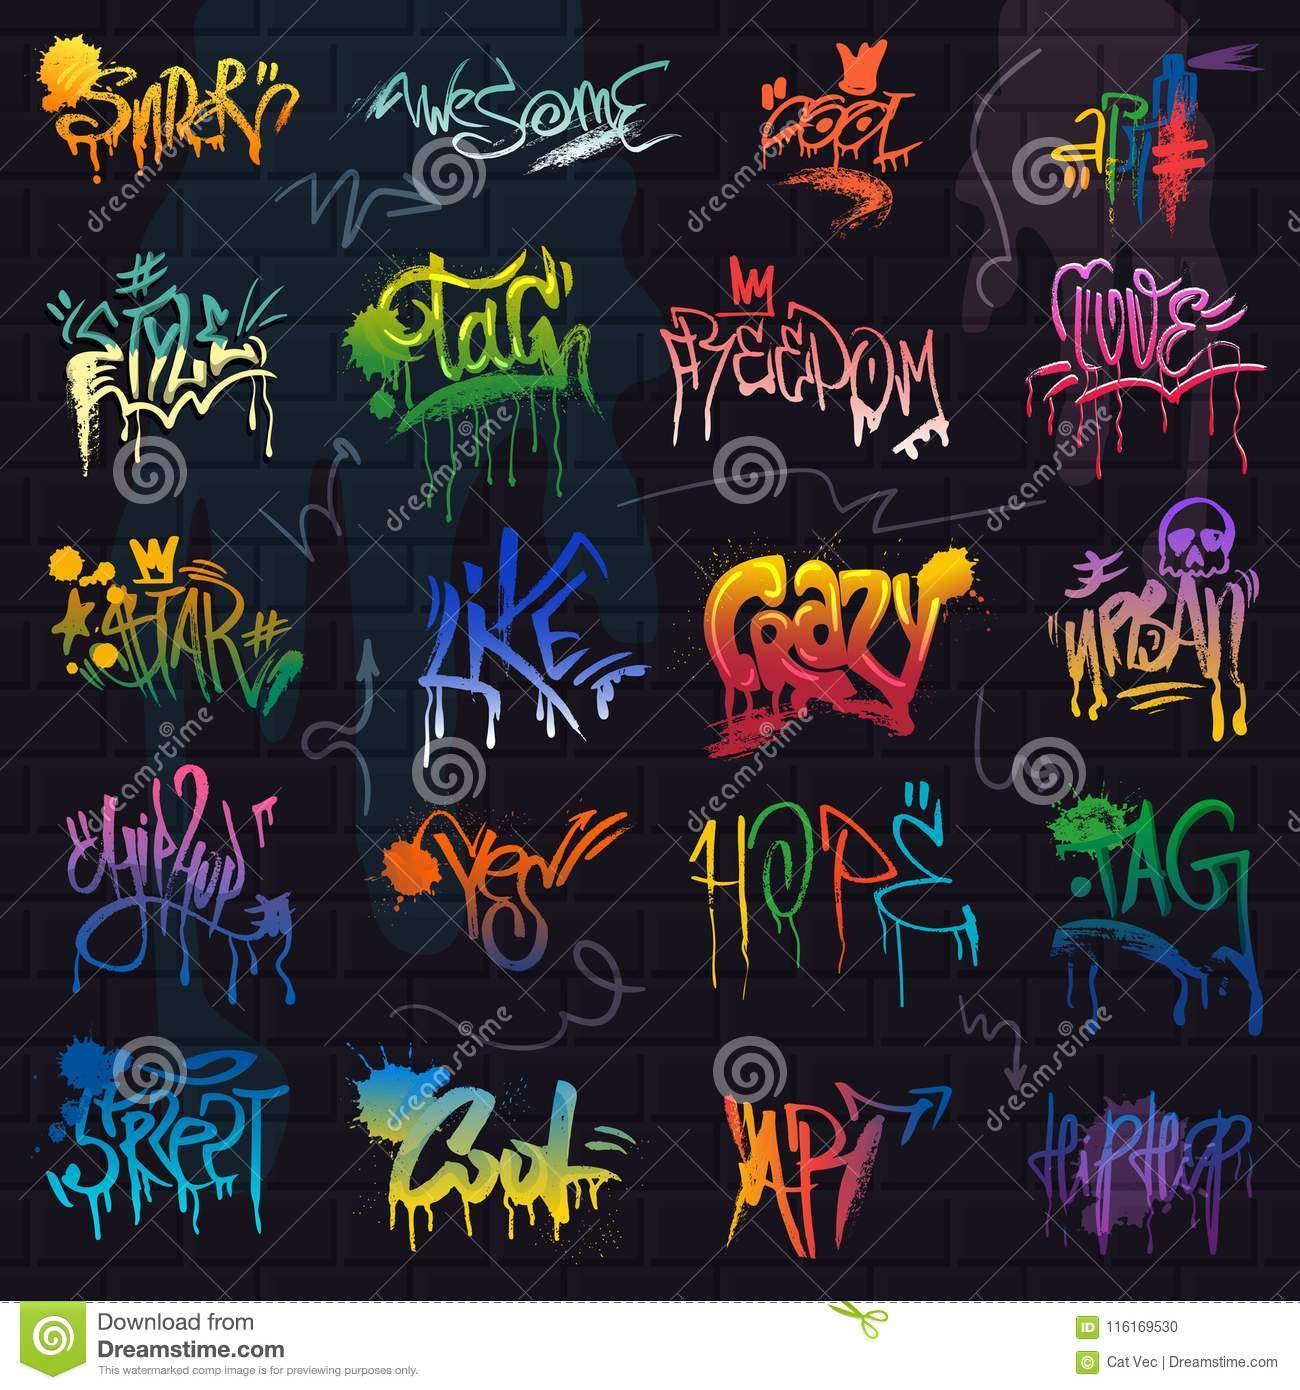 Graffiti vector graffito of brushstroke lettering or graphic grunge typography illustration set of street text with love